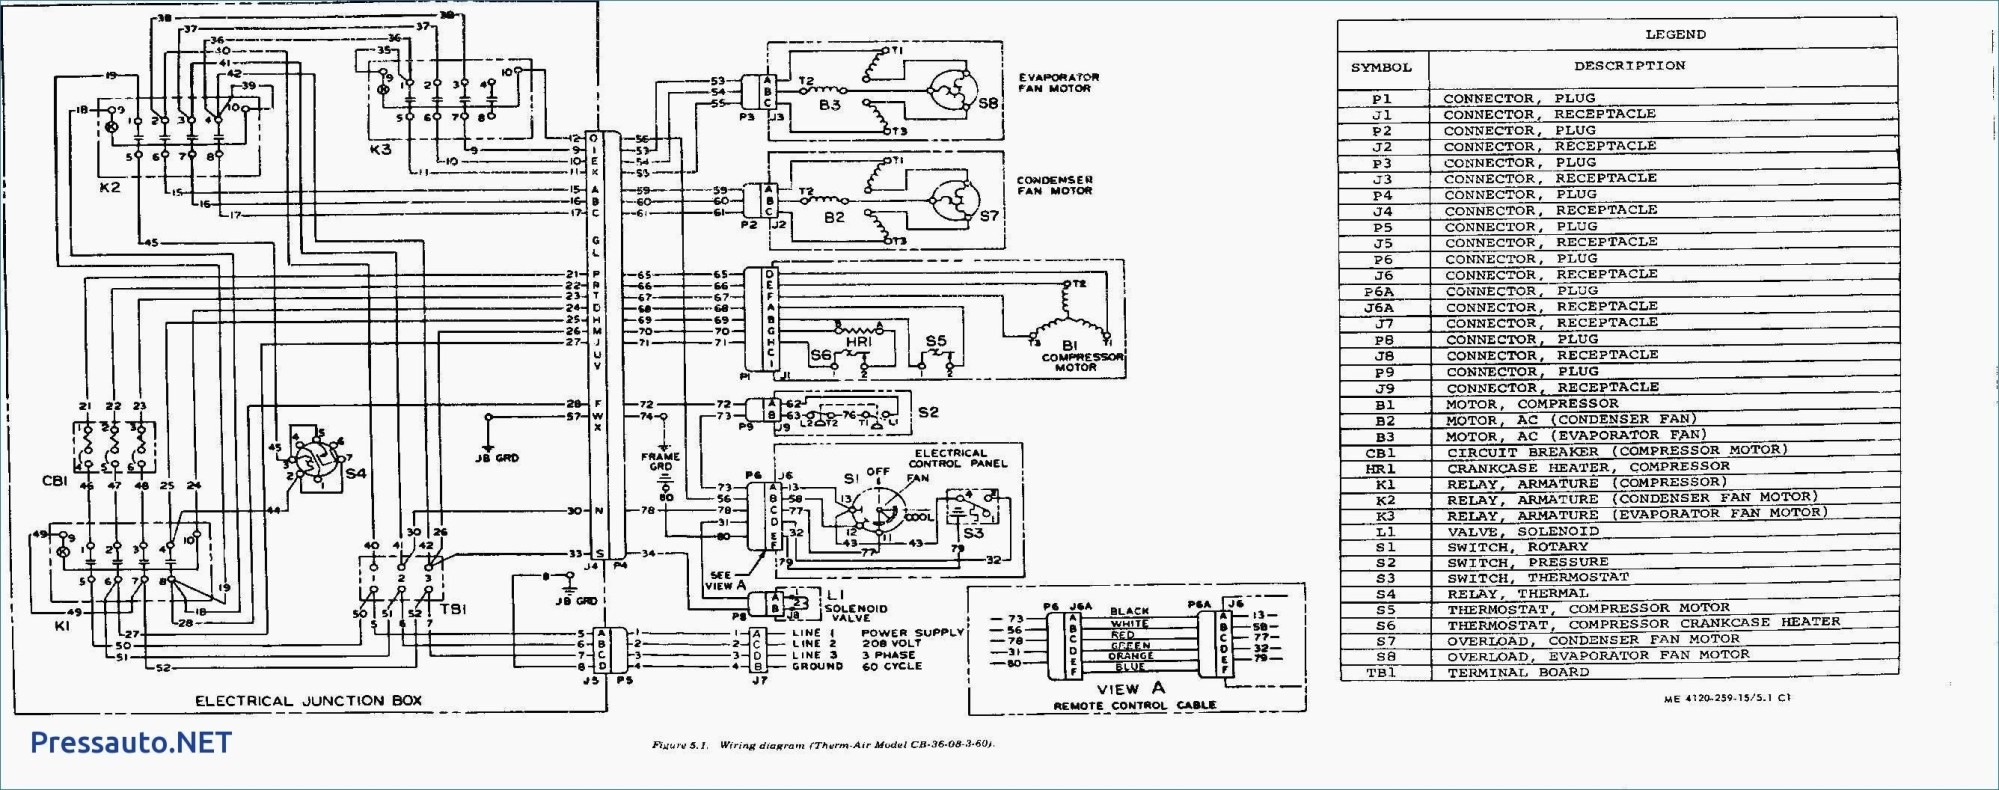 hight resolution of contactor wiring diagram ac unit free wiring diagram contactor wiring diagram ac unit trane contactor wiring